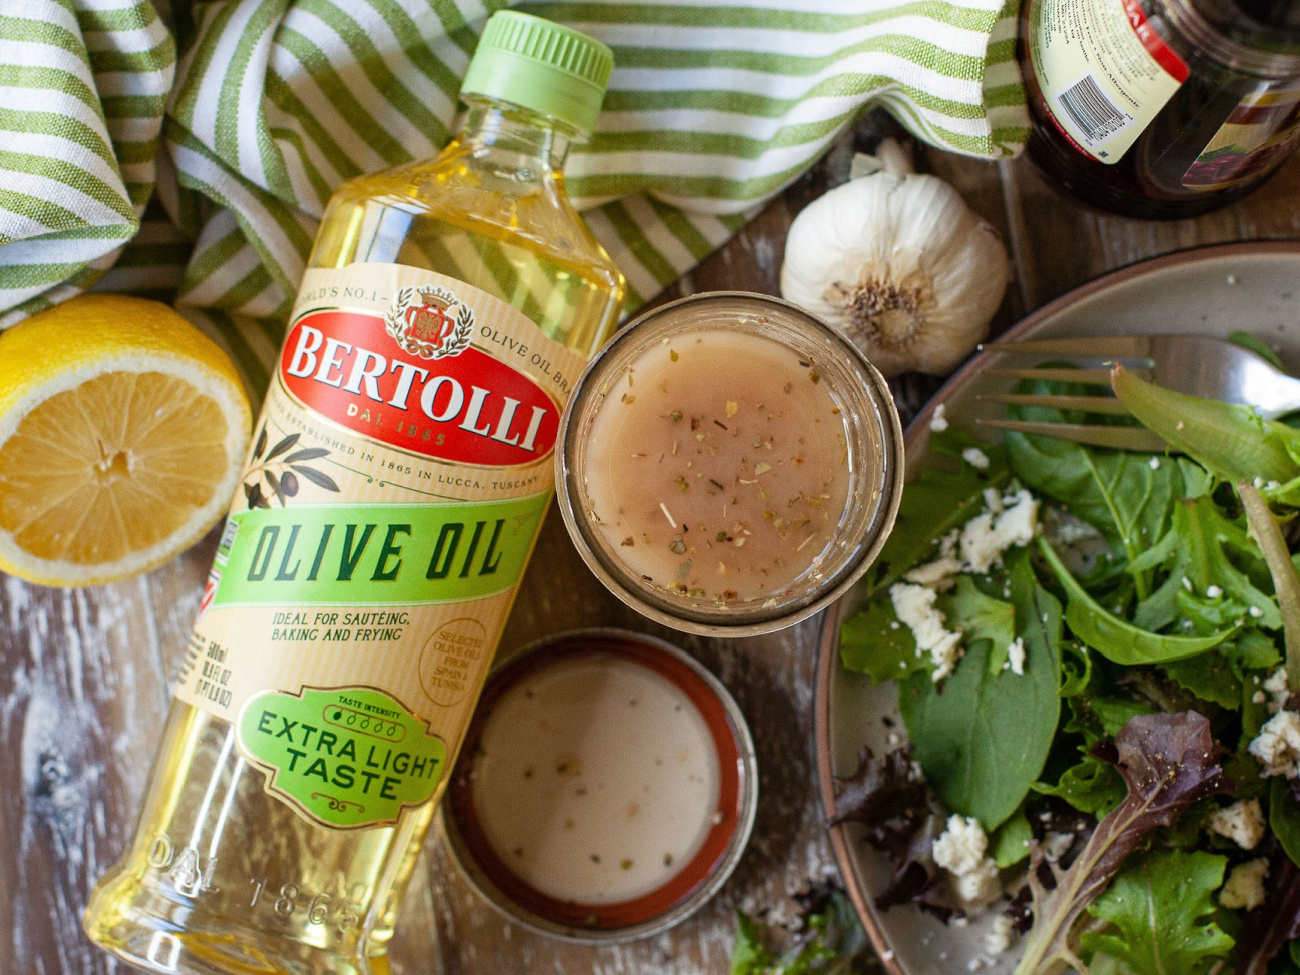 Bertolli Olive Oil As Low As $3.50 At Publix on I Heart Publix 2